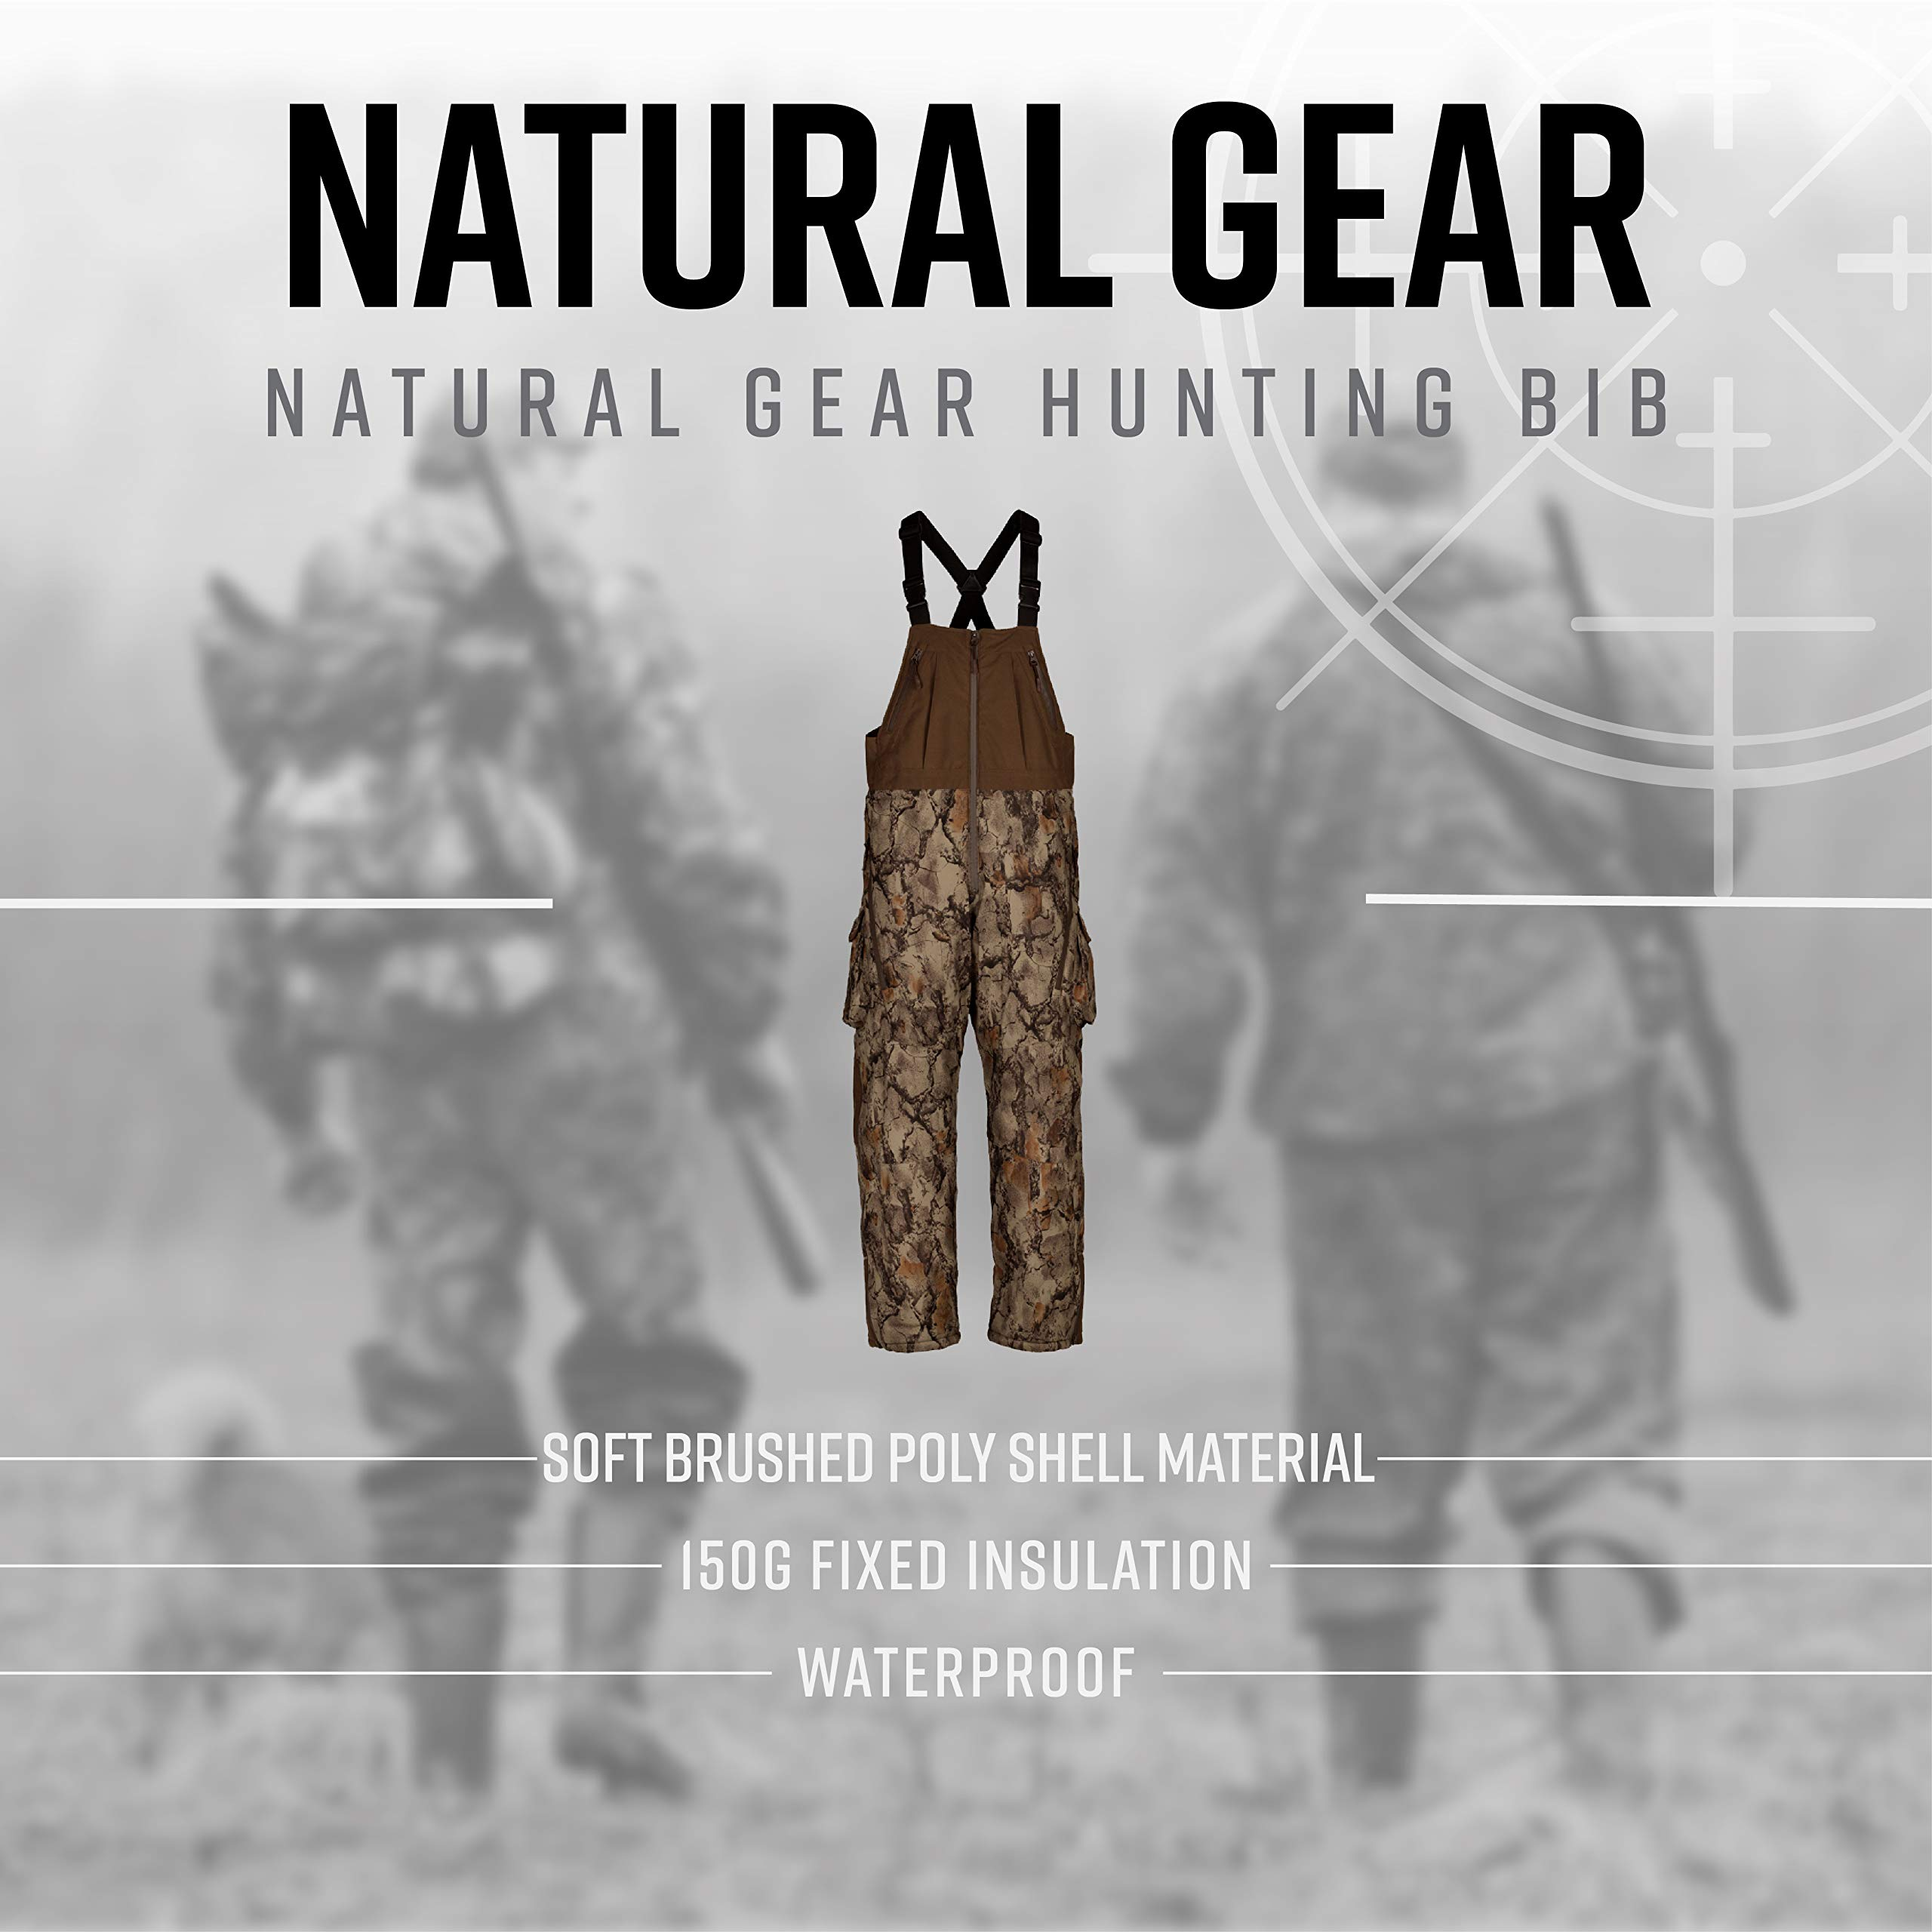 23ccc0e96b6f6 ... Natural Gear Stealth Hunter Grand Stand Bibs for Men, Insulated and  Waterproof Camo Hunting Overalls. 🔍. Previous. Next